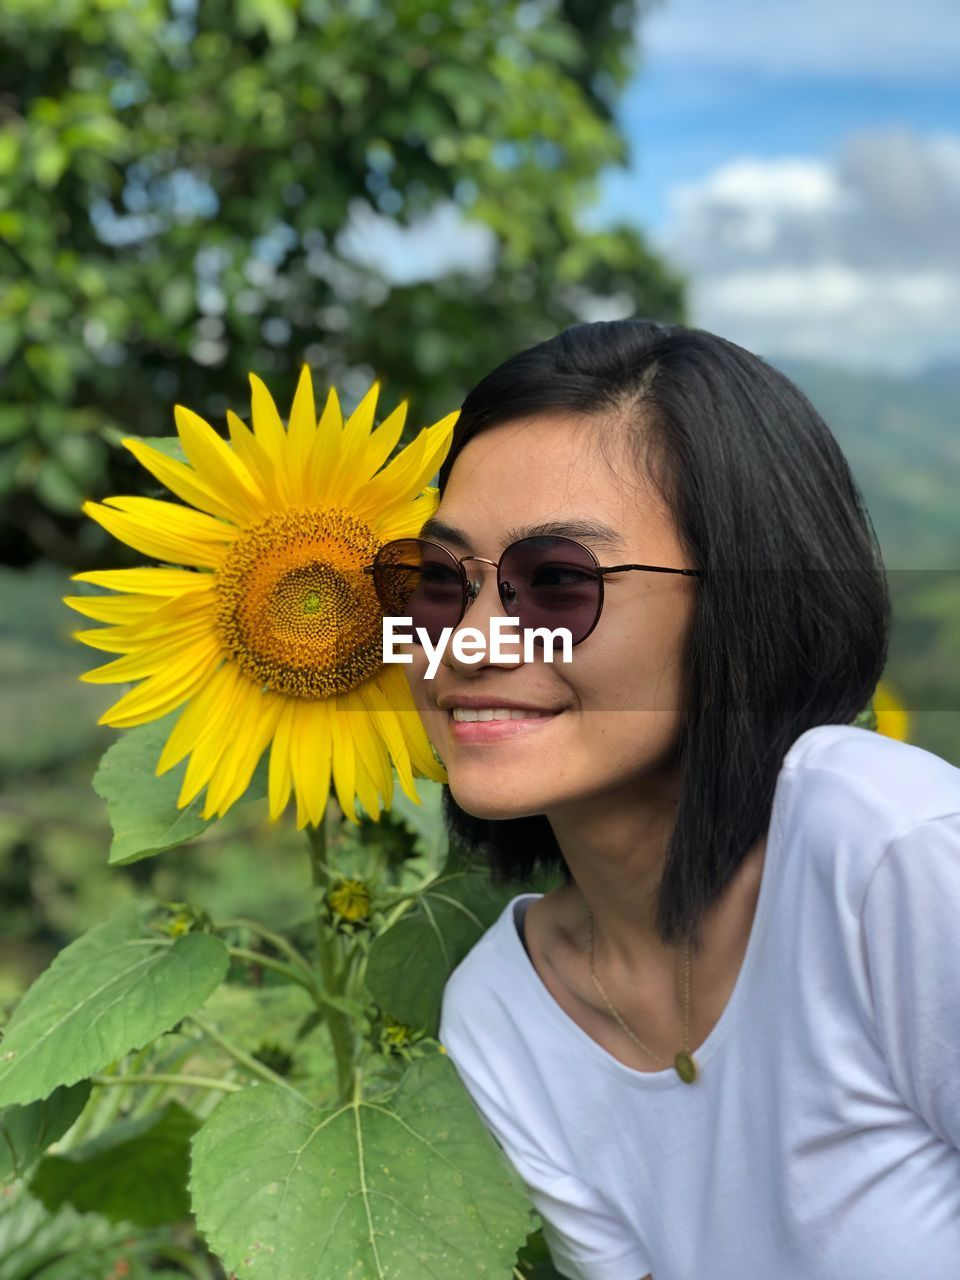 Close-up of smiling young woman wearing sunglasses standing by sunflower